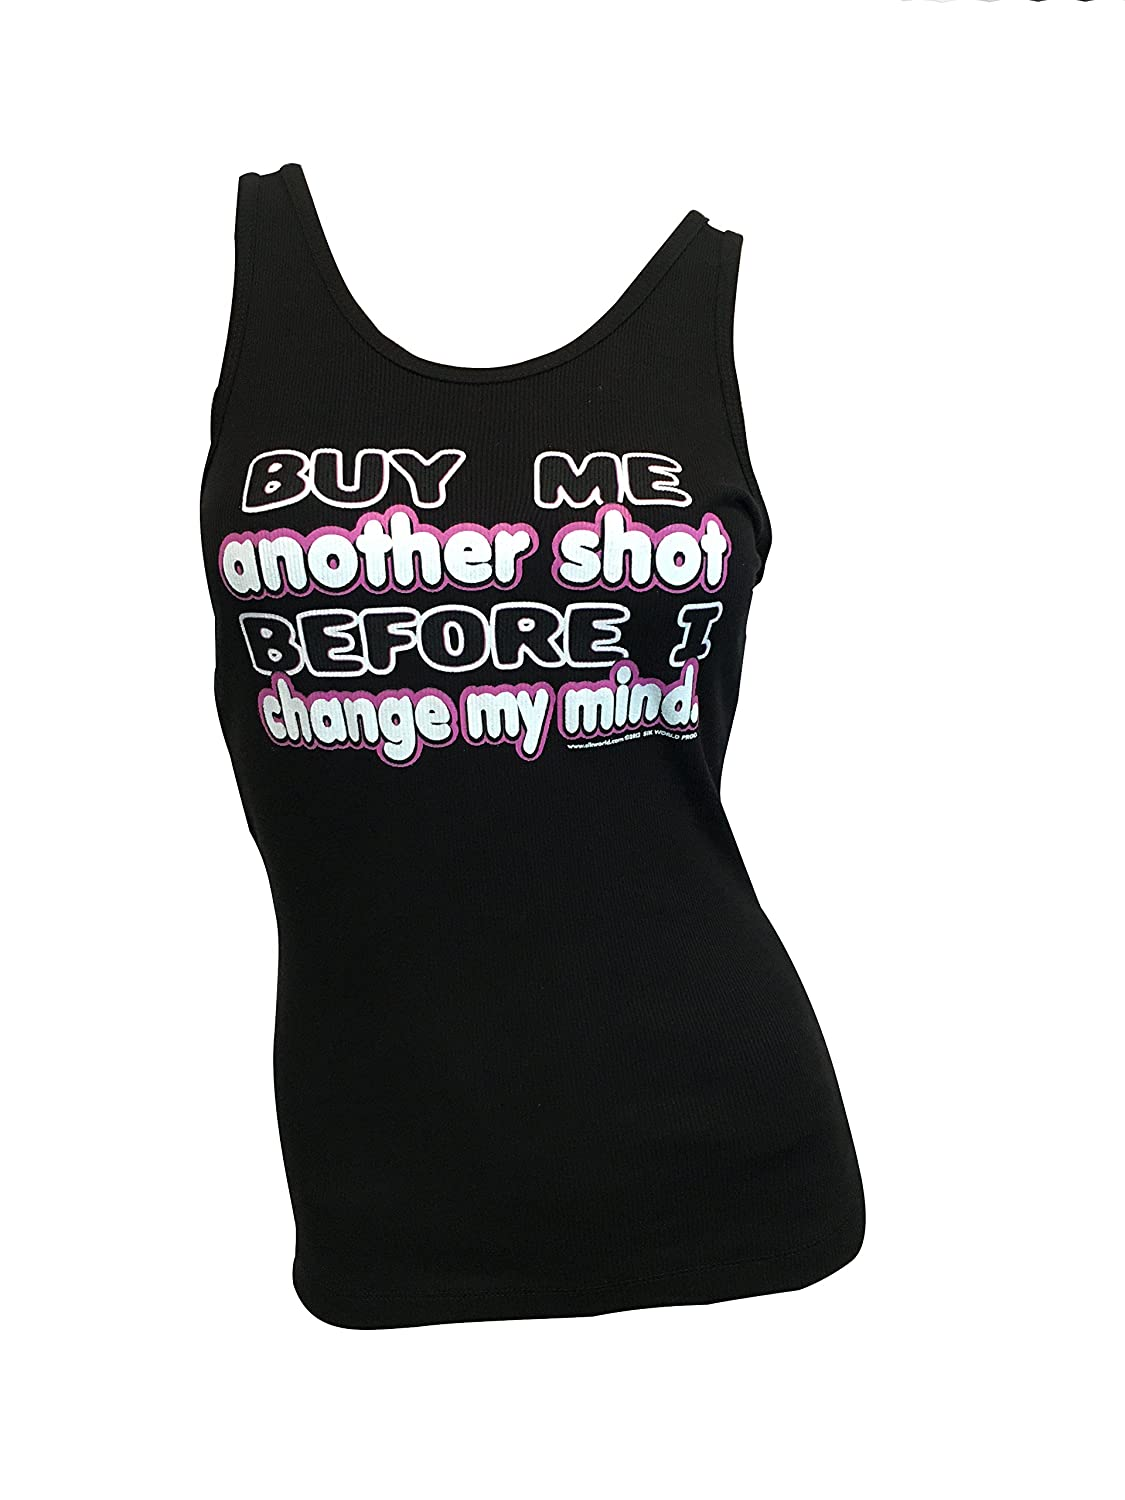 Sik World BUY ME ANOTHER SHOT BEFORE I CHANGE MY MIND Womens Boy Beater Tank Top